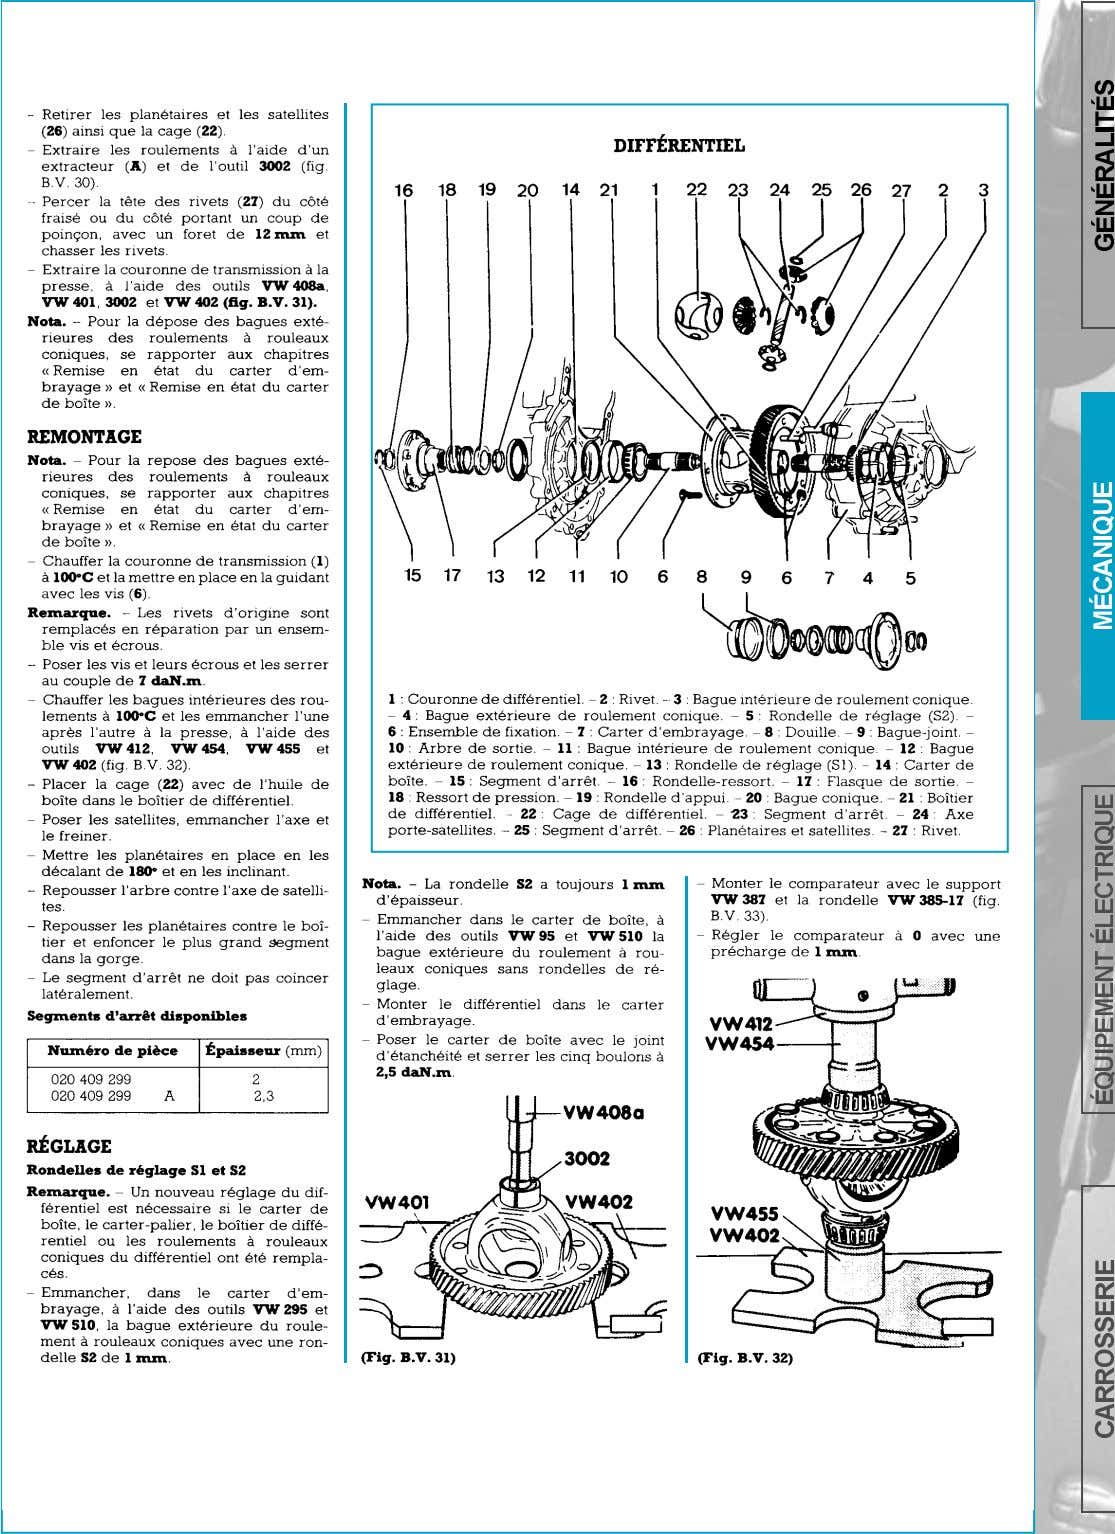 BOITE DE VITESSES-DIFFERENTIEL   page 127